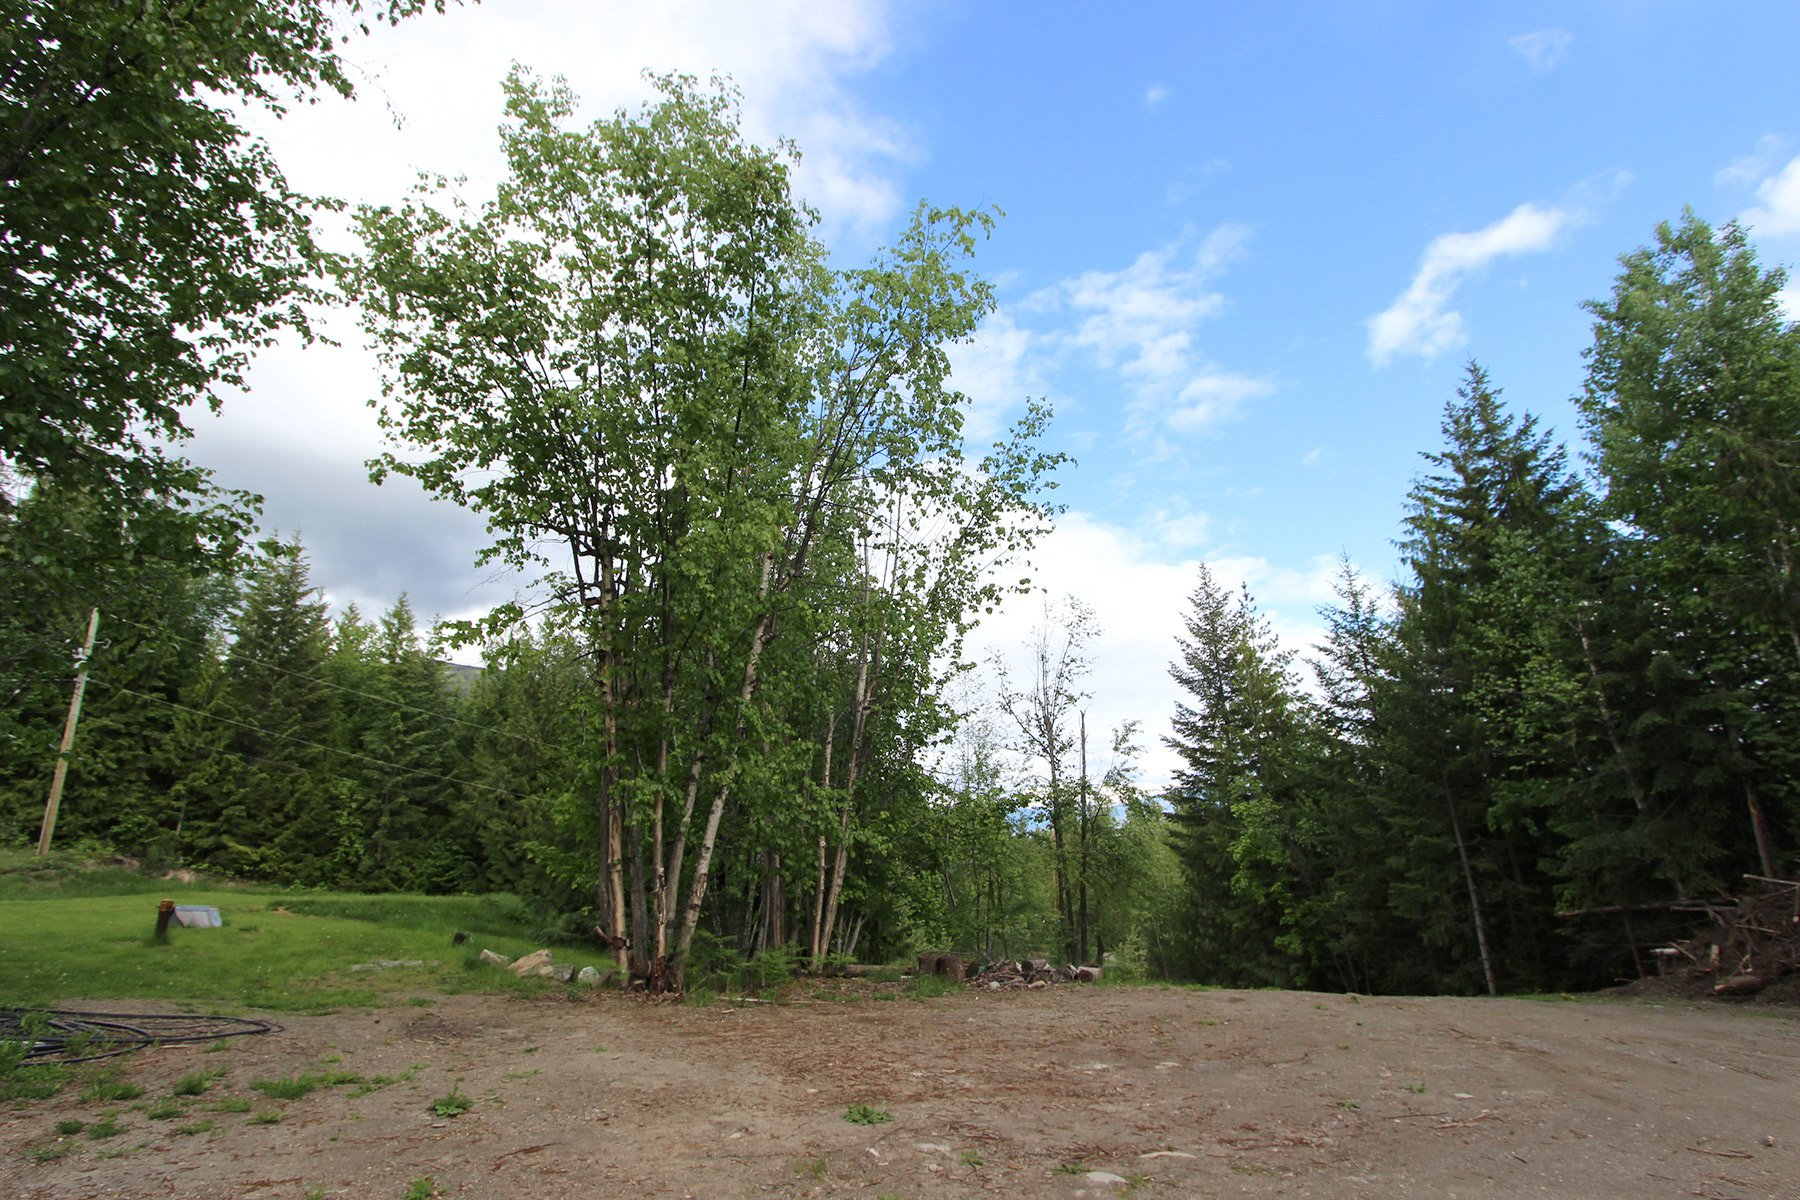 Photo 8: Photos: 6831 Magna Bay Drive in Magna Bay: House with Acreage for sale : MLS®# 10205520